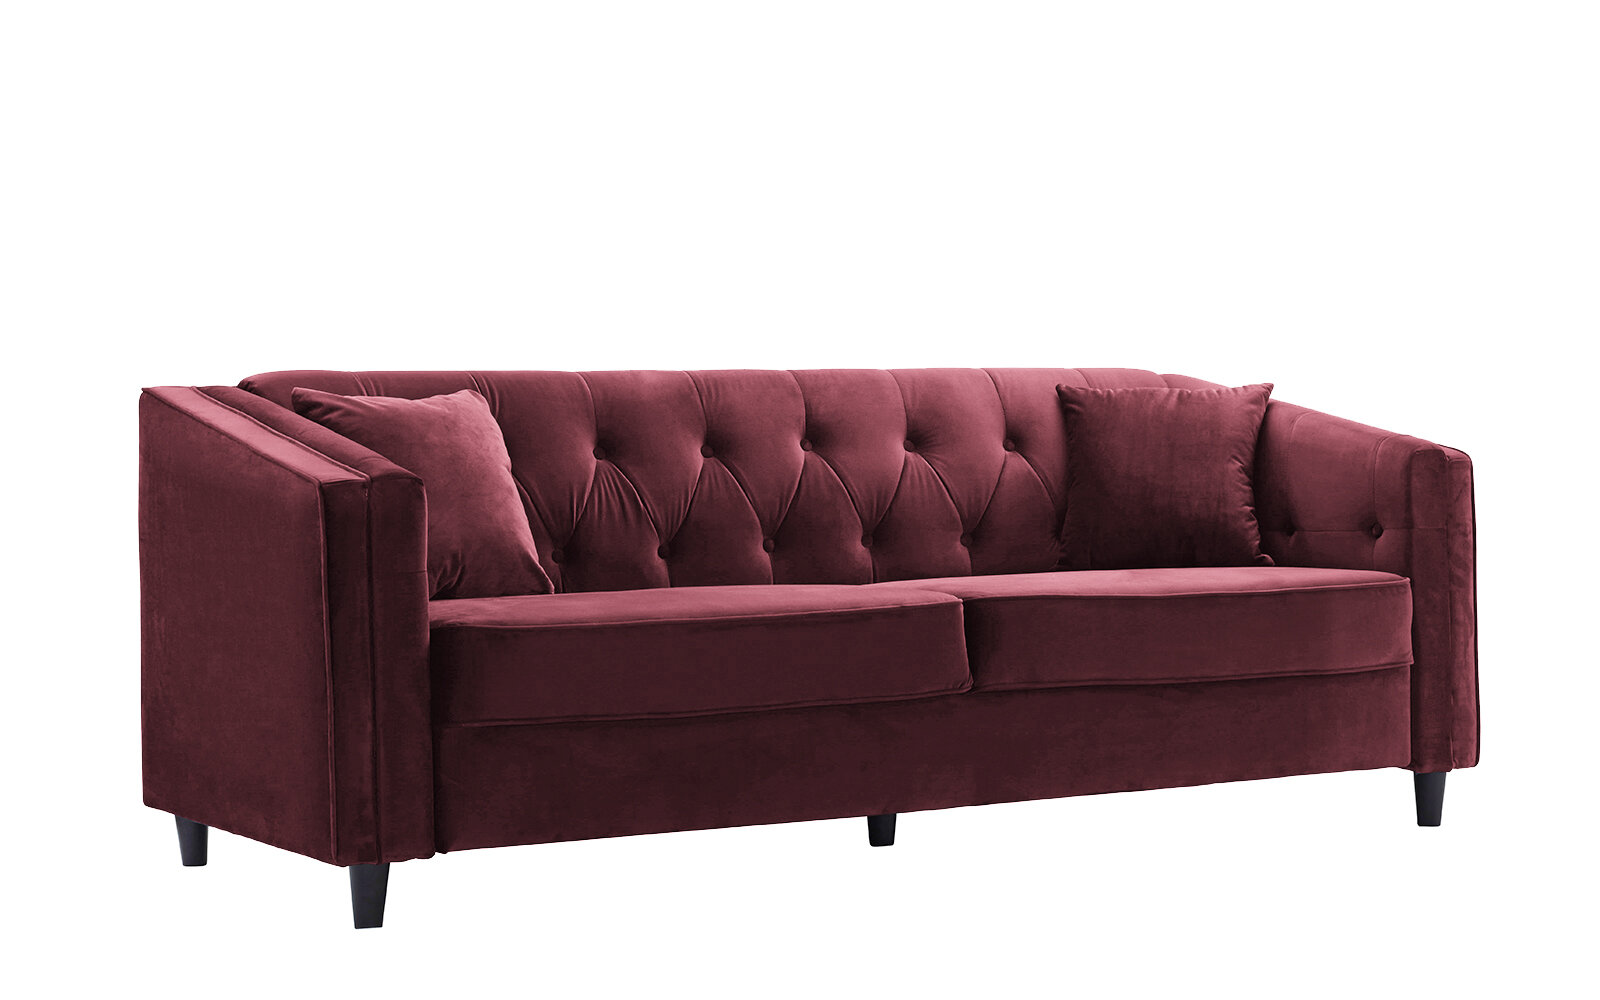 Alcott Hill Amberwood Classic Living Room Couch Sofa with Tufted ...